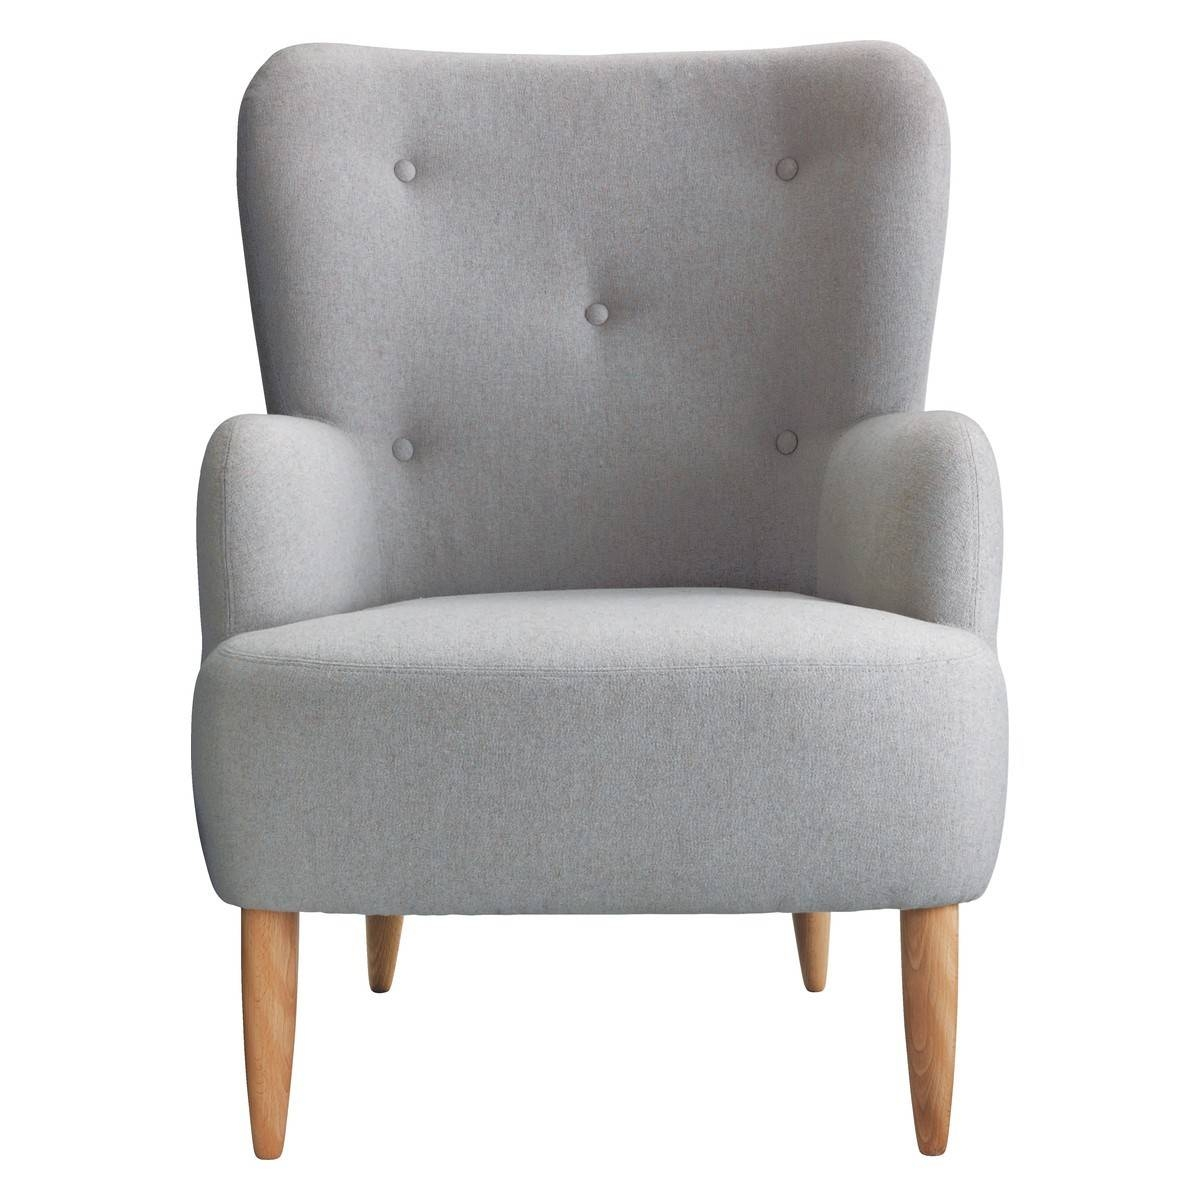 Small Armchairs Uk | 850Powell303 with regard to Compact Armchairs (Image 30 of 30)